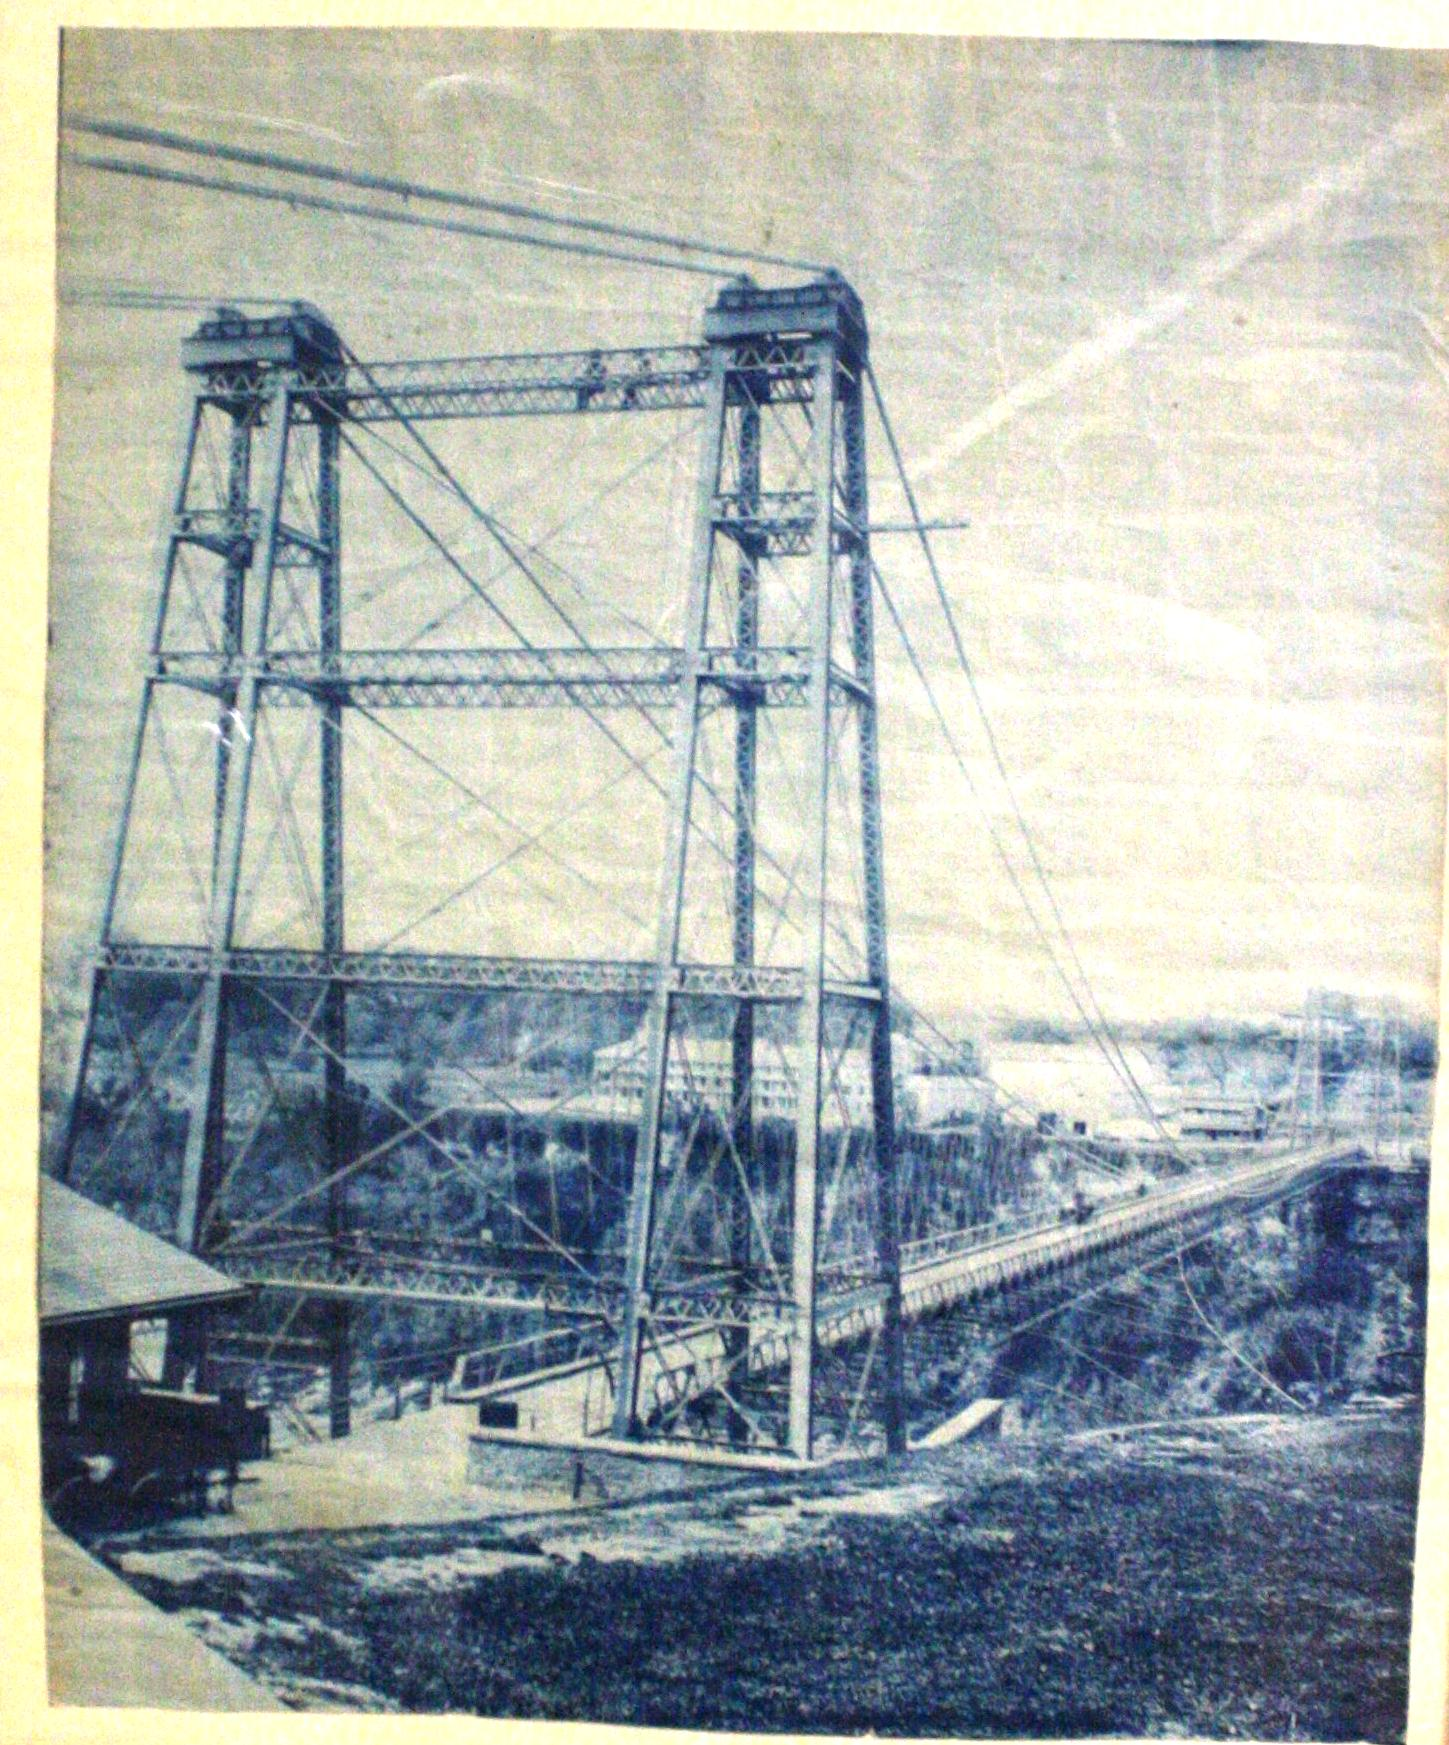 The Second Falls View Suspension Bridge (1889-1897). Black and white image of a steel towers, large cables going behind the photographer and many stretching alongside the length of the bridge to minimise the sway after the last one collapsed. The photograph is taken from essentially the same point as the updated Falls View Suspsension Bridge, with a moraine and Clifton House at the opposite side of the image, although the Clifton House is visible due to the minimal material needed in the steel towers. There is a building to the left of the bridge which could be the customs house as well as a rise to the right of the bridge. The bridge is wide enough to fit two lanes of traffic.